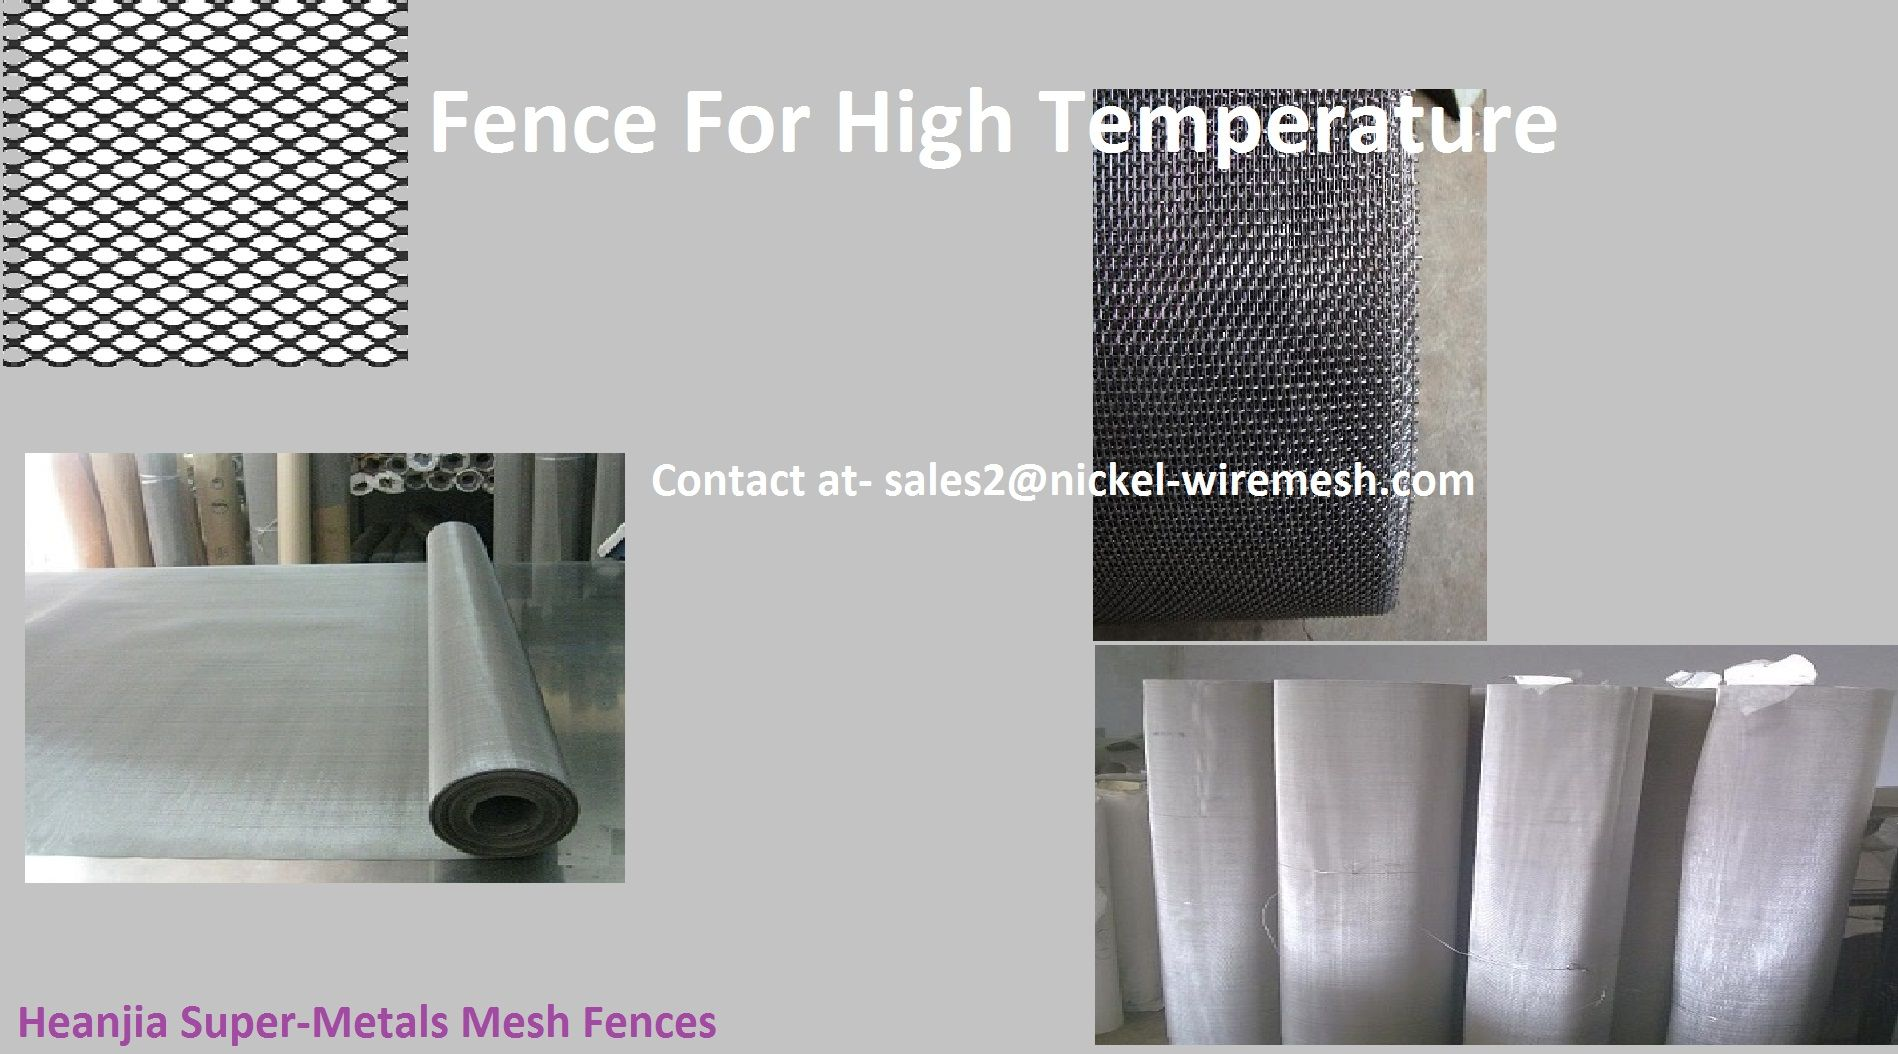 Fencing mesh for high temperature applications | Mesh Products for ...